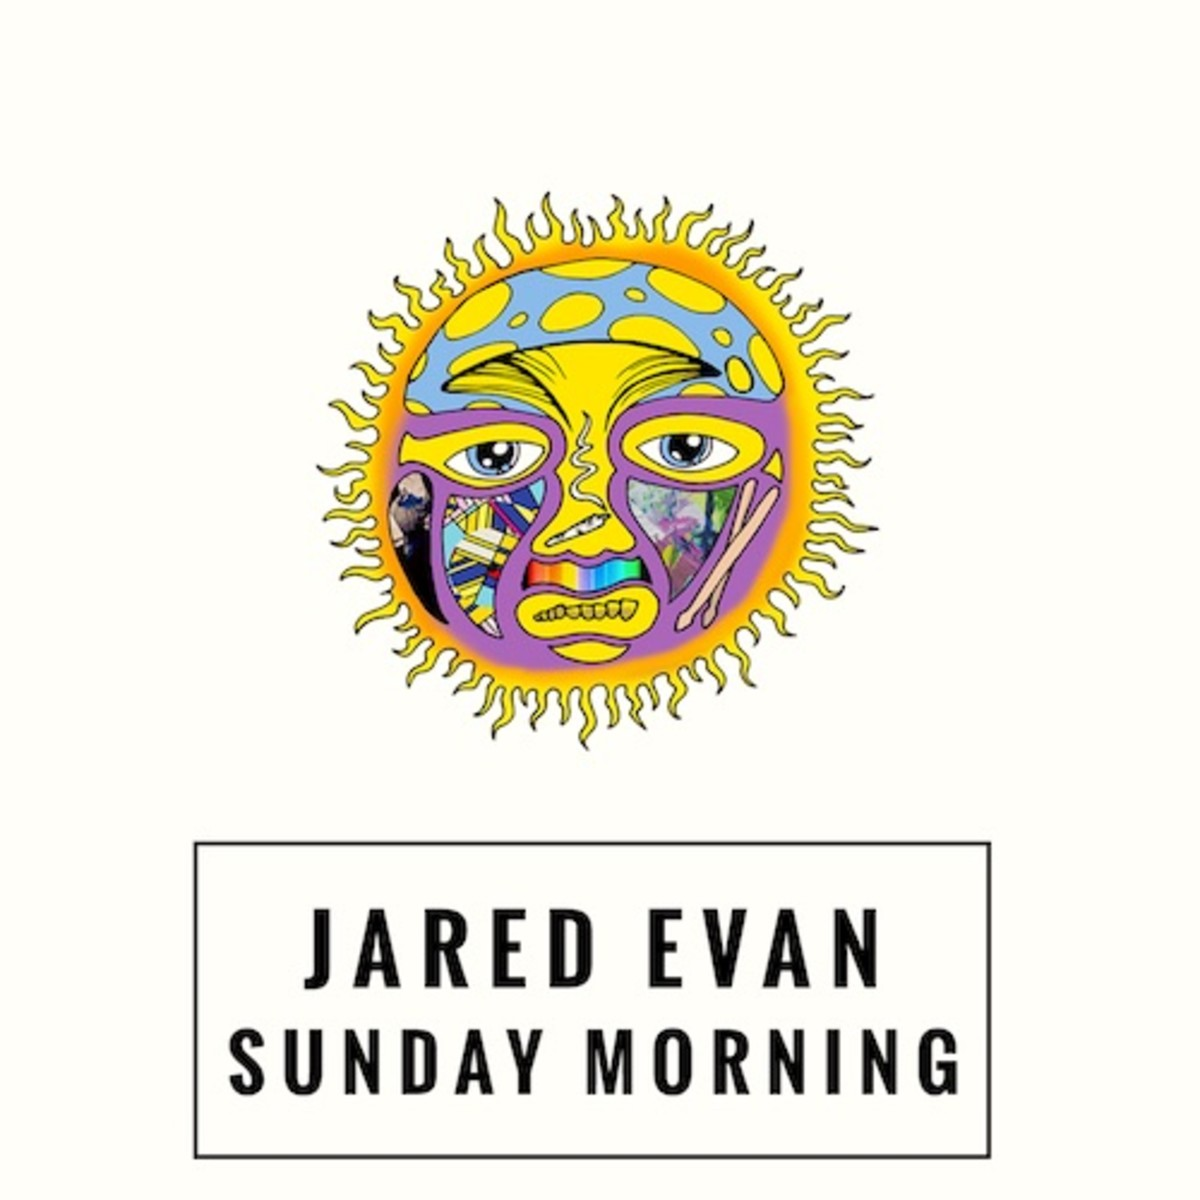 jared-evan-sunday-morning.jpg